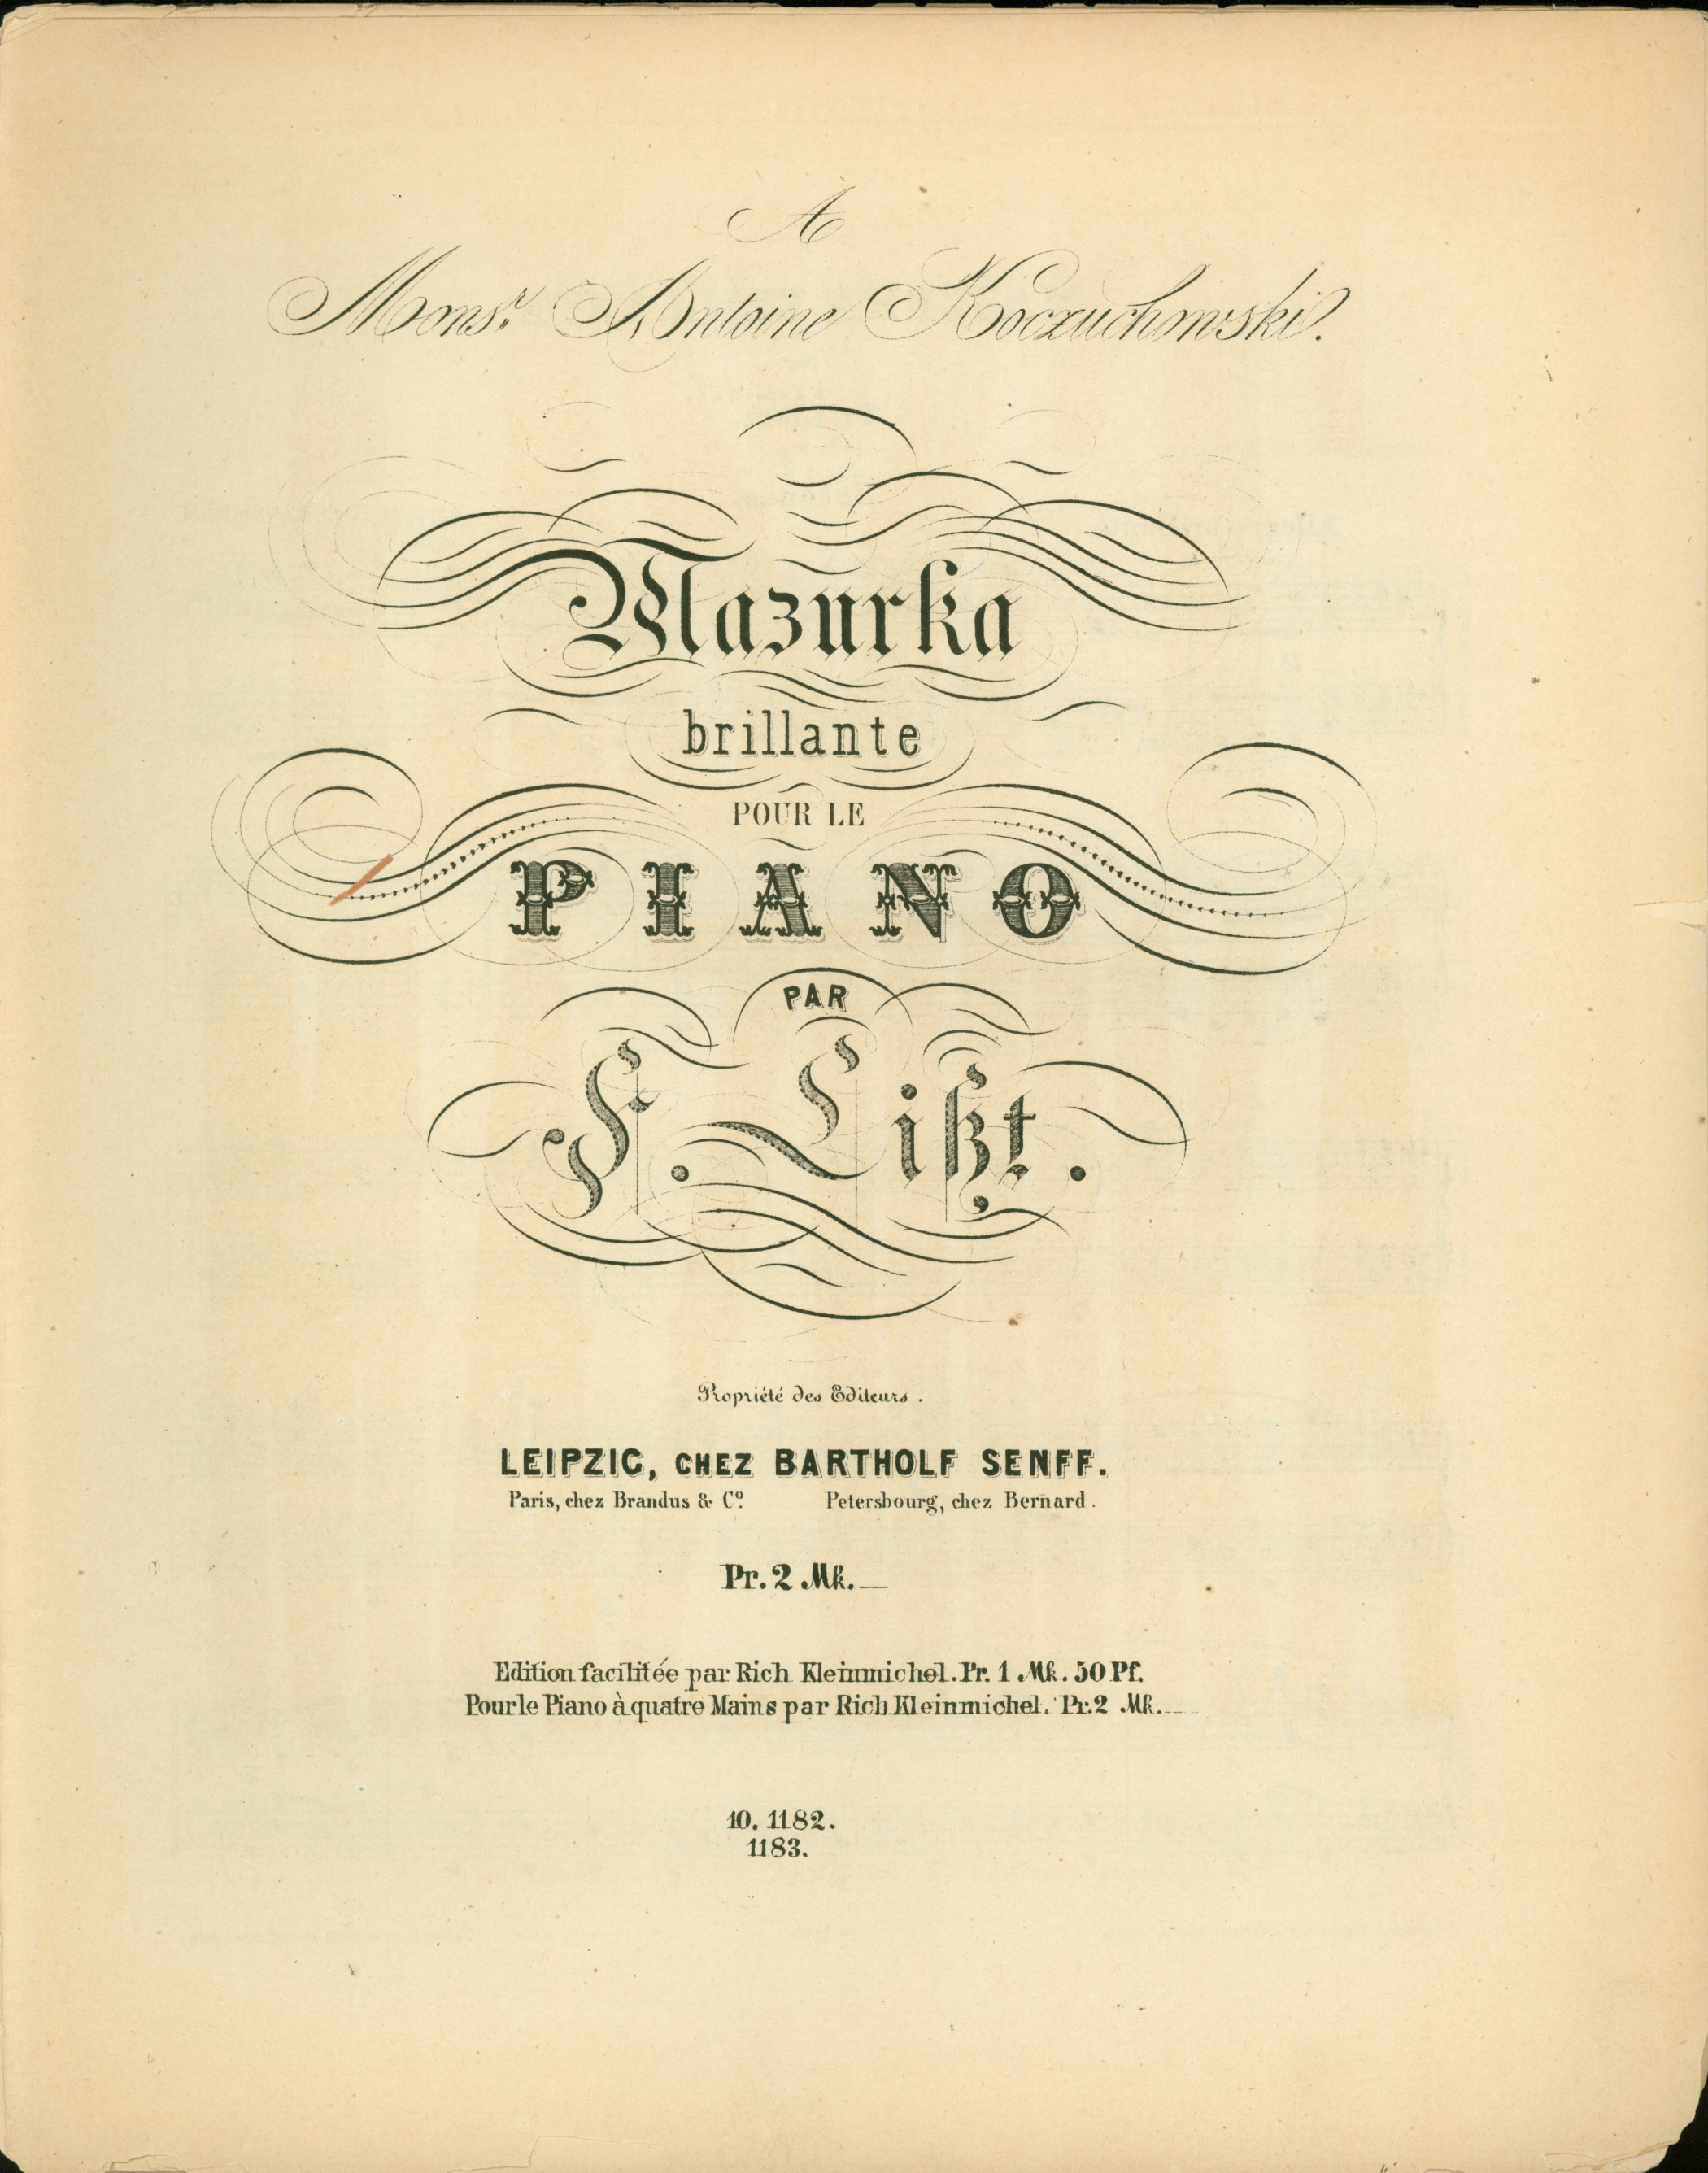 Liszt, Franz - Mazurka Brilliante Pour Le Piano Par F. Liszt. For Piano Four Hands. - (3241)